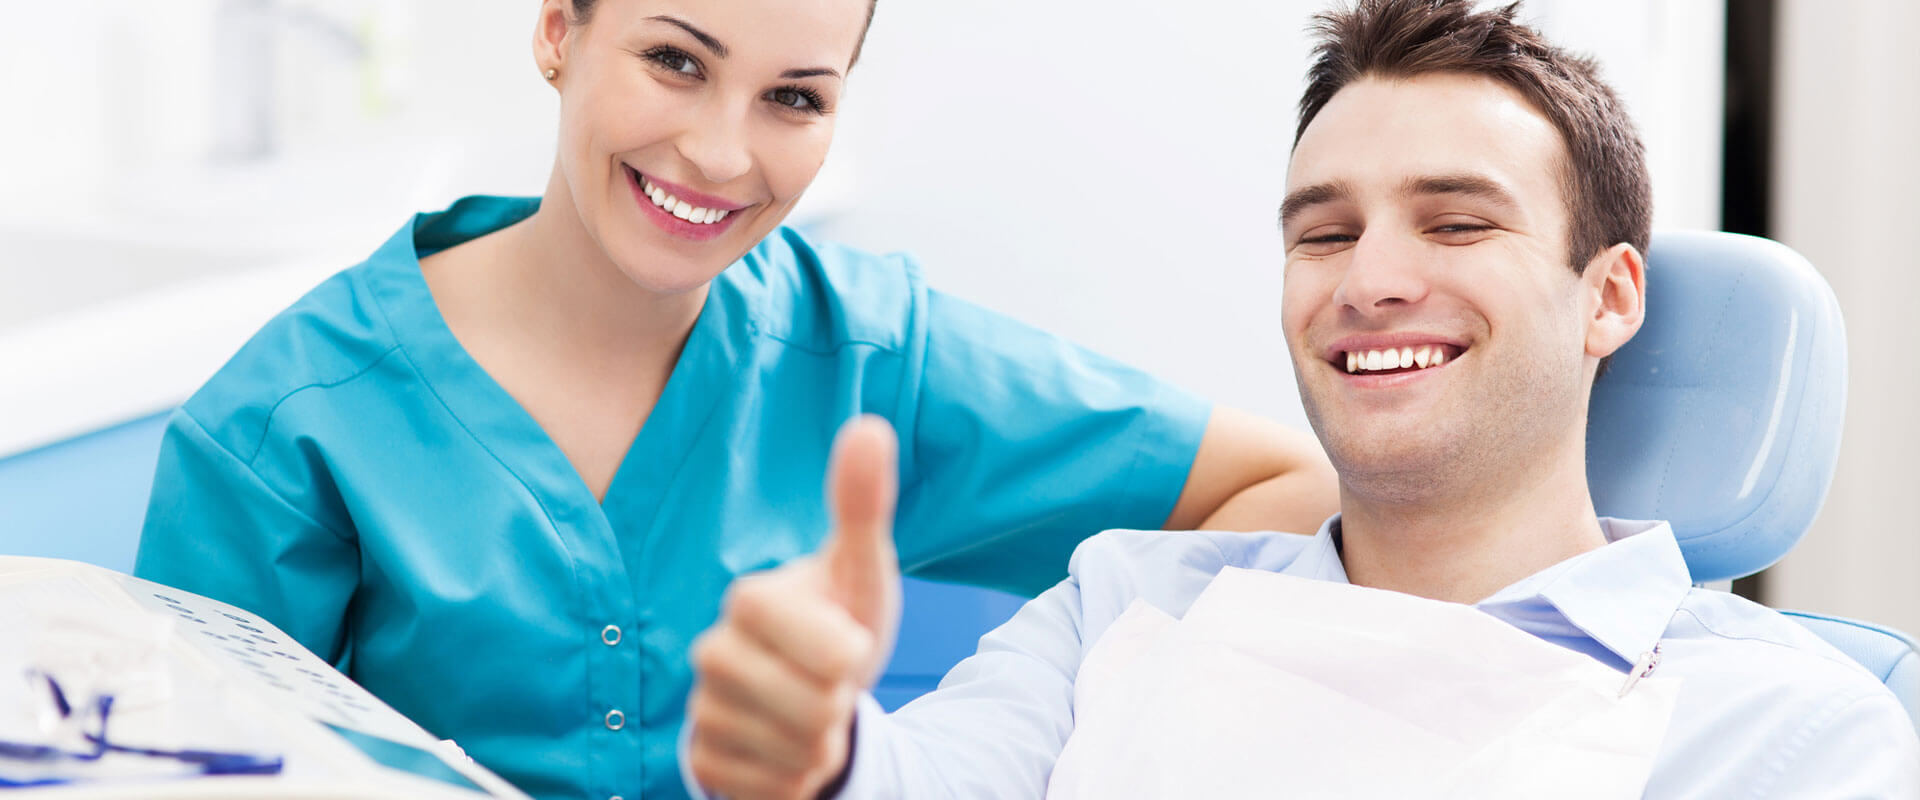 Man giving thumbs up ready for oral surgery